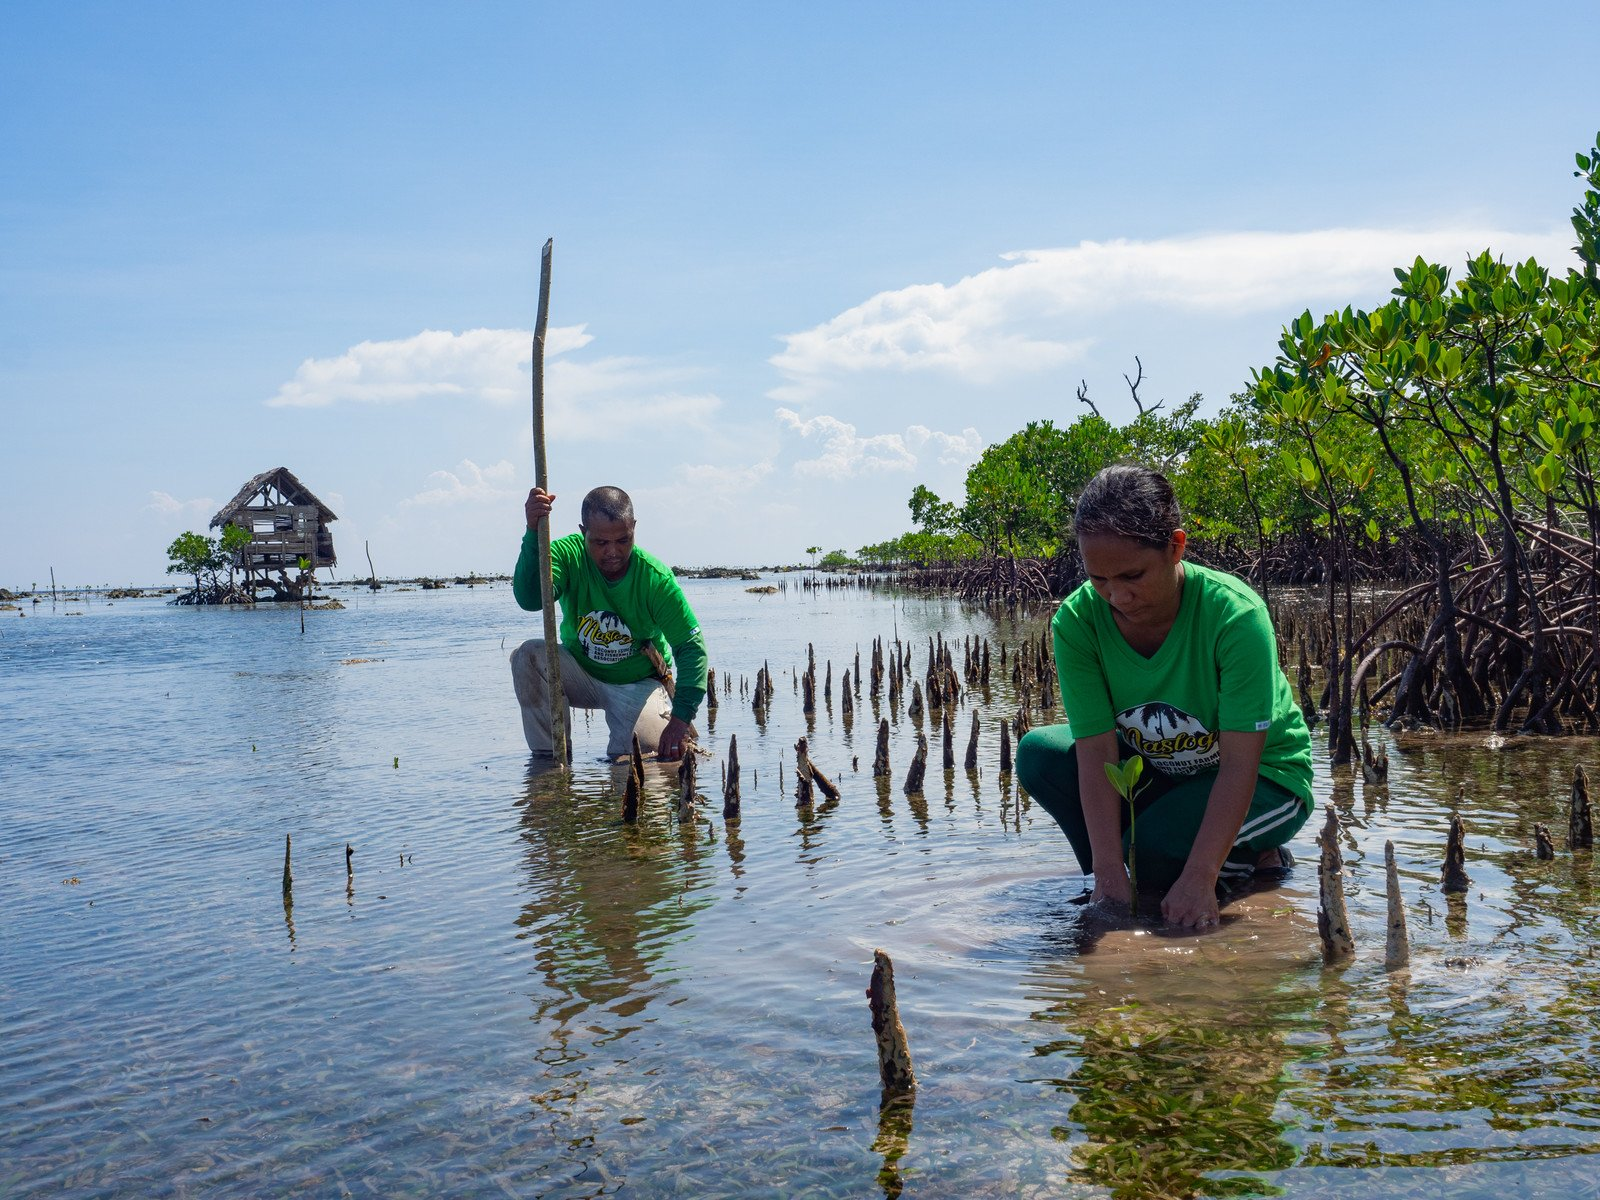 Members of the Maslog Coconut Farmer and Fishermen Association, a local fisherfolk organisation in Lawaan (in the province of Eastern Samar), planting mangrove saplings to restore a mangrove forest that was damaged by Super Typhoon Haiyan in 2013. Together with the support of Oxfam and our local partner, the association has planted more than 20,000 mangrove seedlings since 2015. (Photo: Elizabeth Stevens / Oxfam)